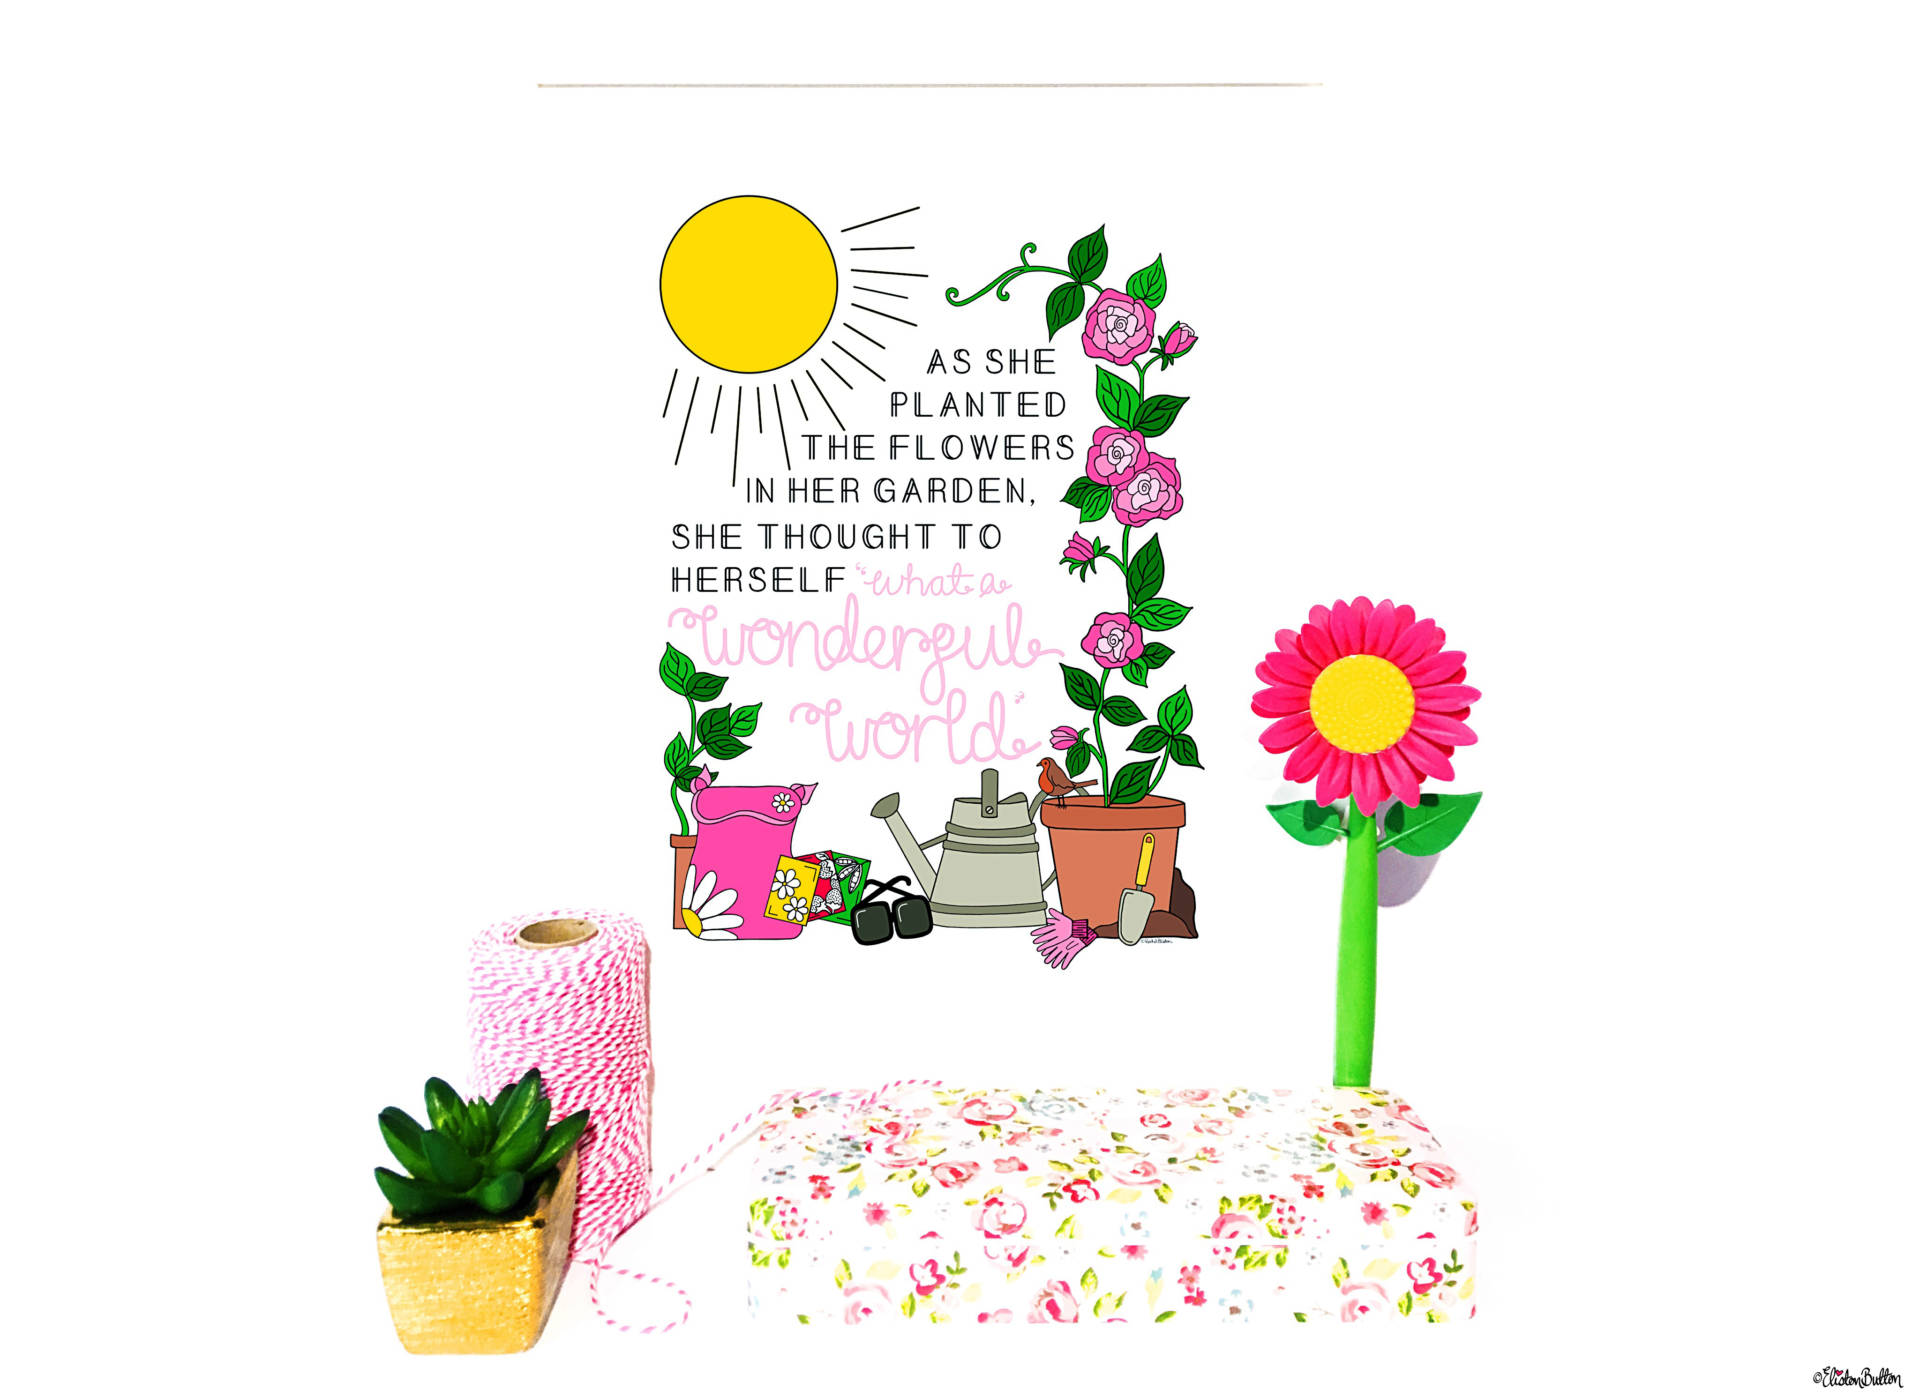 What a Wonderful World Gardening Quote Print by Eliston Button - Create 30 – No. 25 – Wonderful World Garden Quote Print at www.elistonbutton.com - Eliston Button - That Crafty Kid – Art, Design, Craft & Adventure.